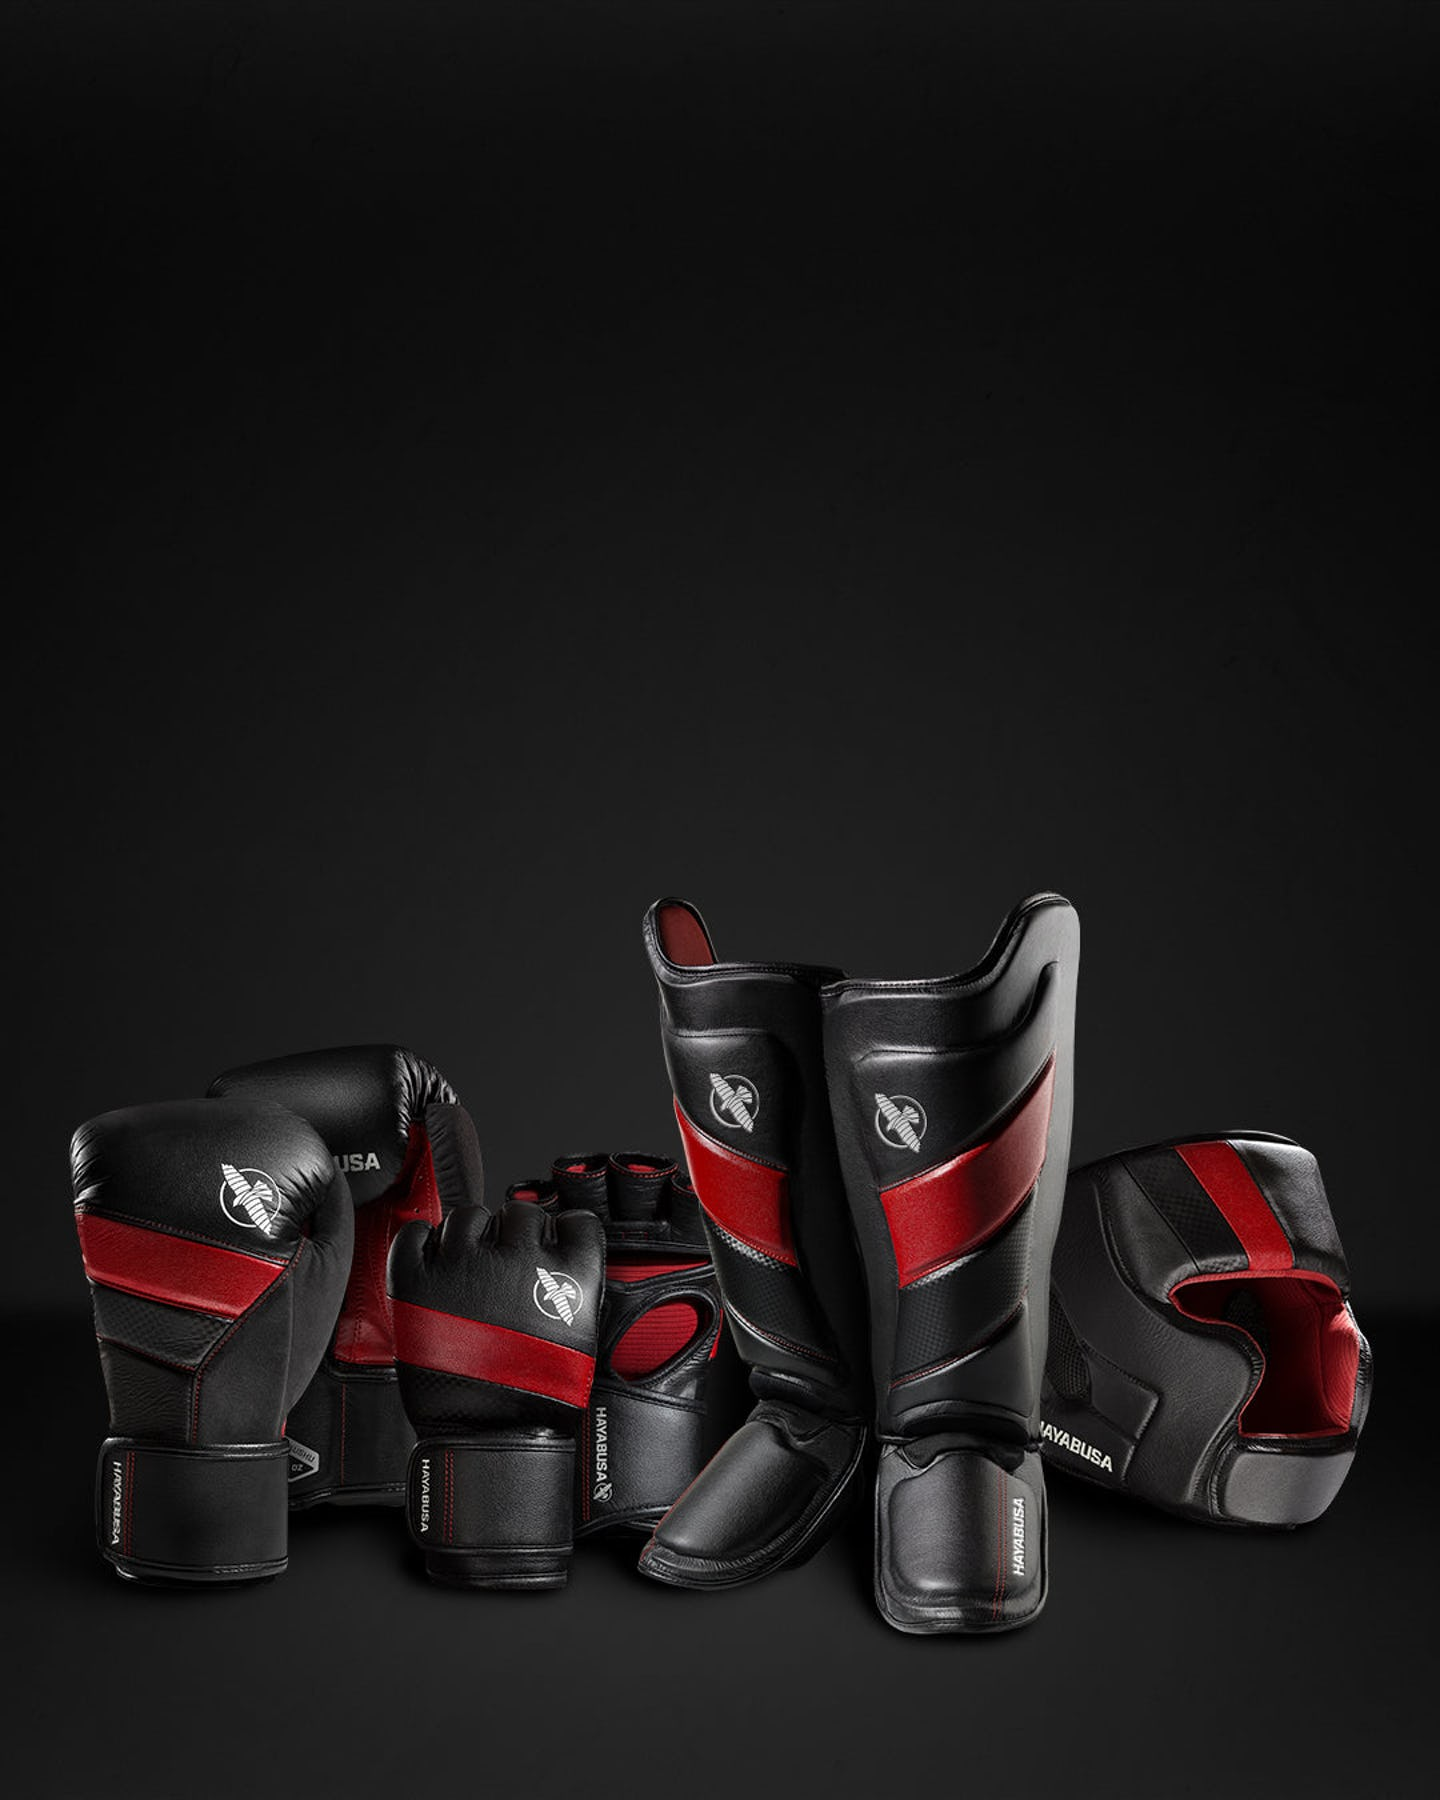 ULTIMATE FIT,PROTECTION ANDPERFORMANCE